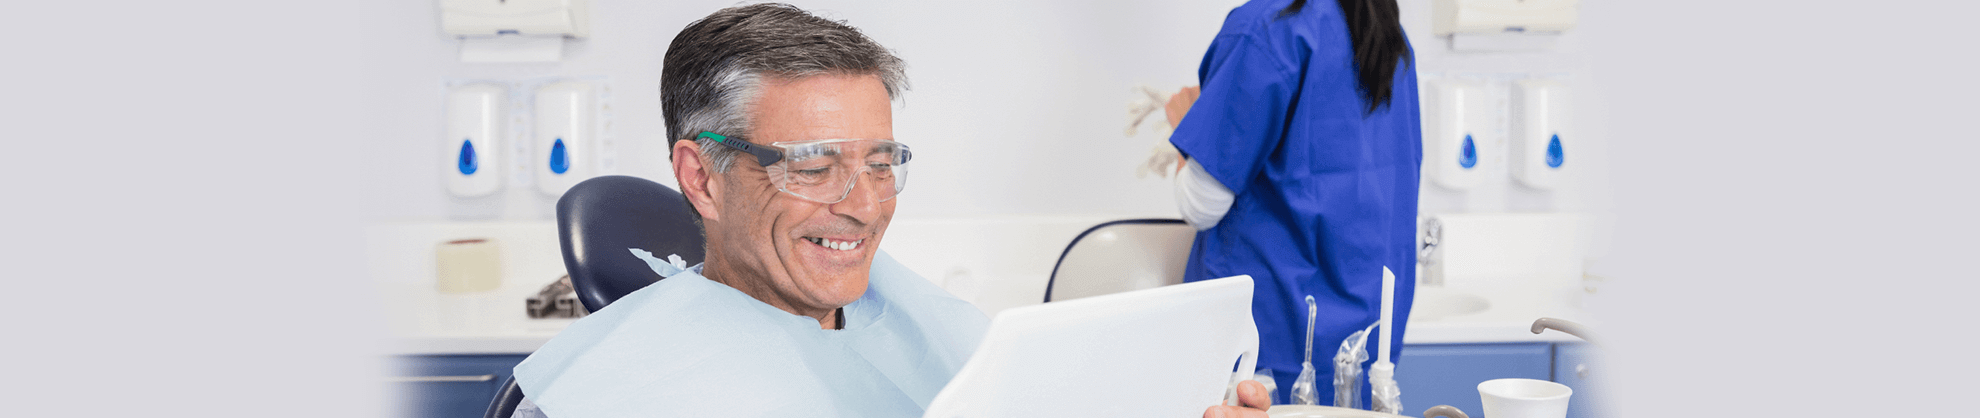 Dental Implants in Spring, Texas